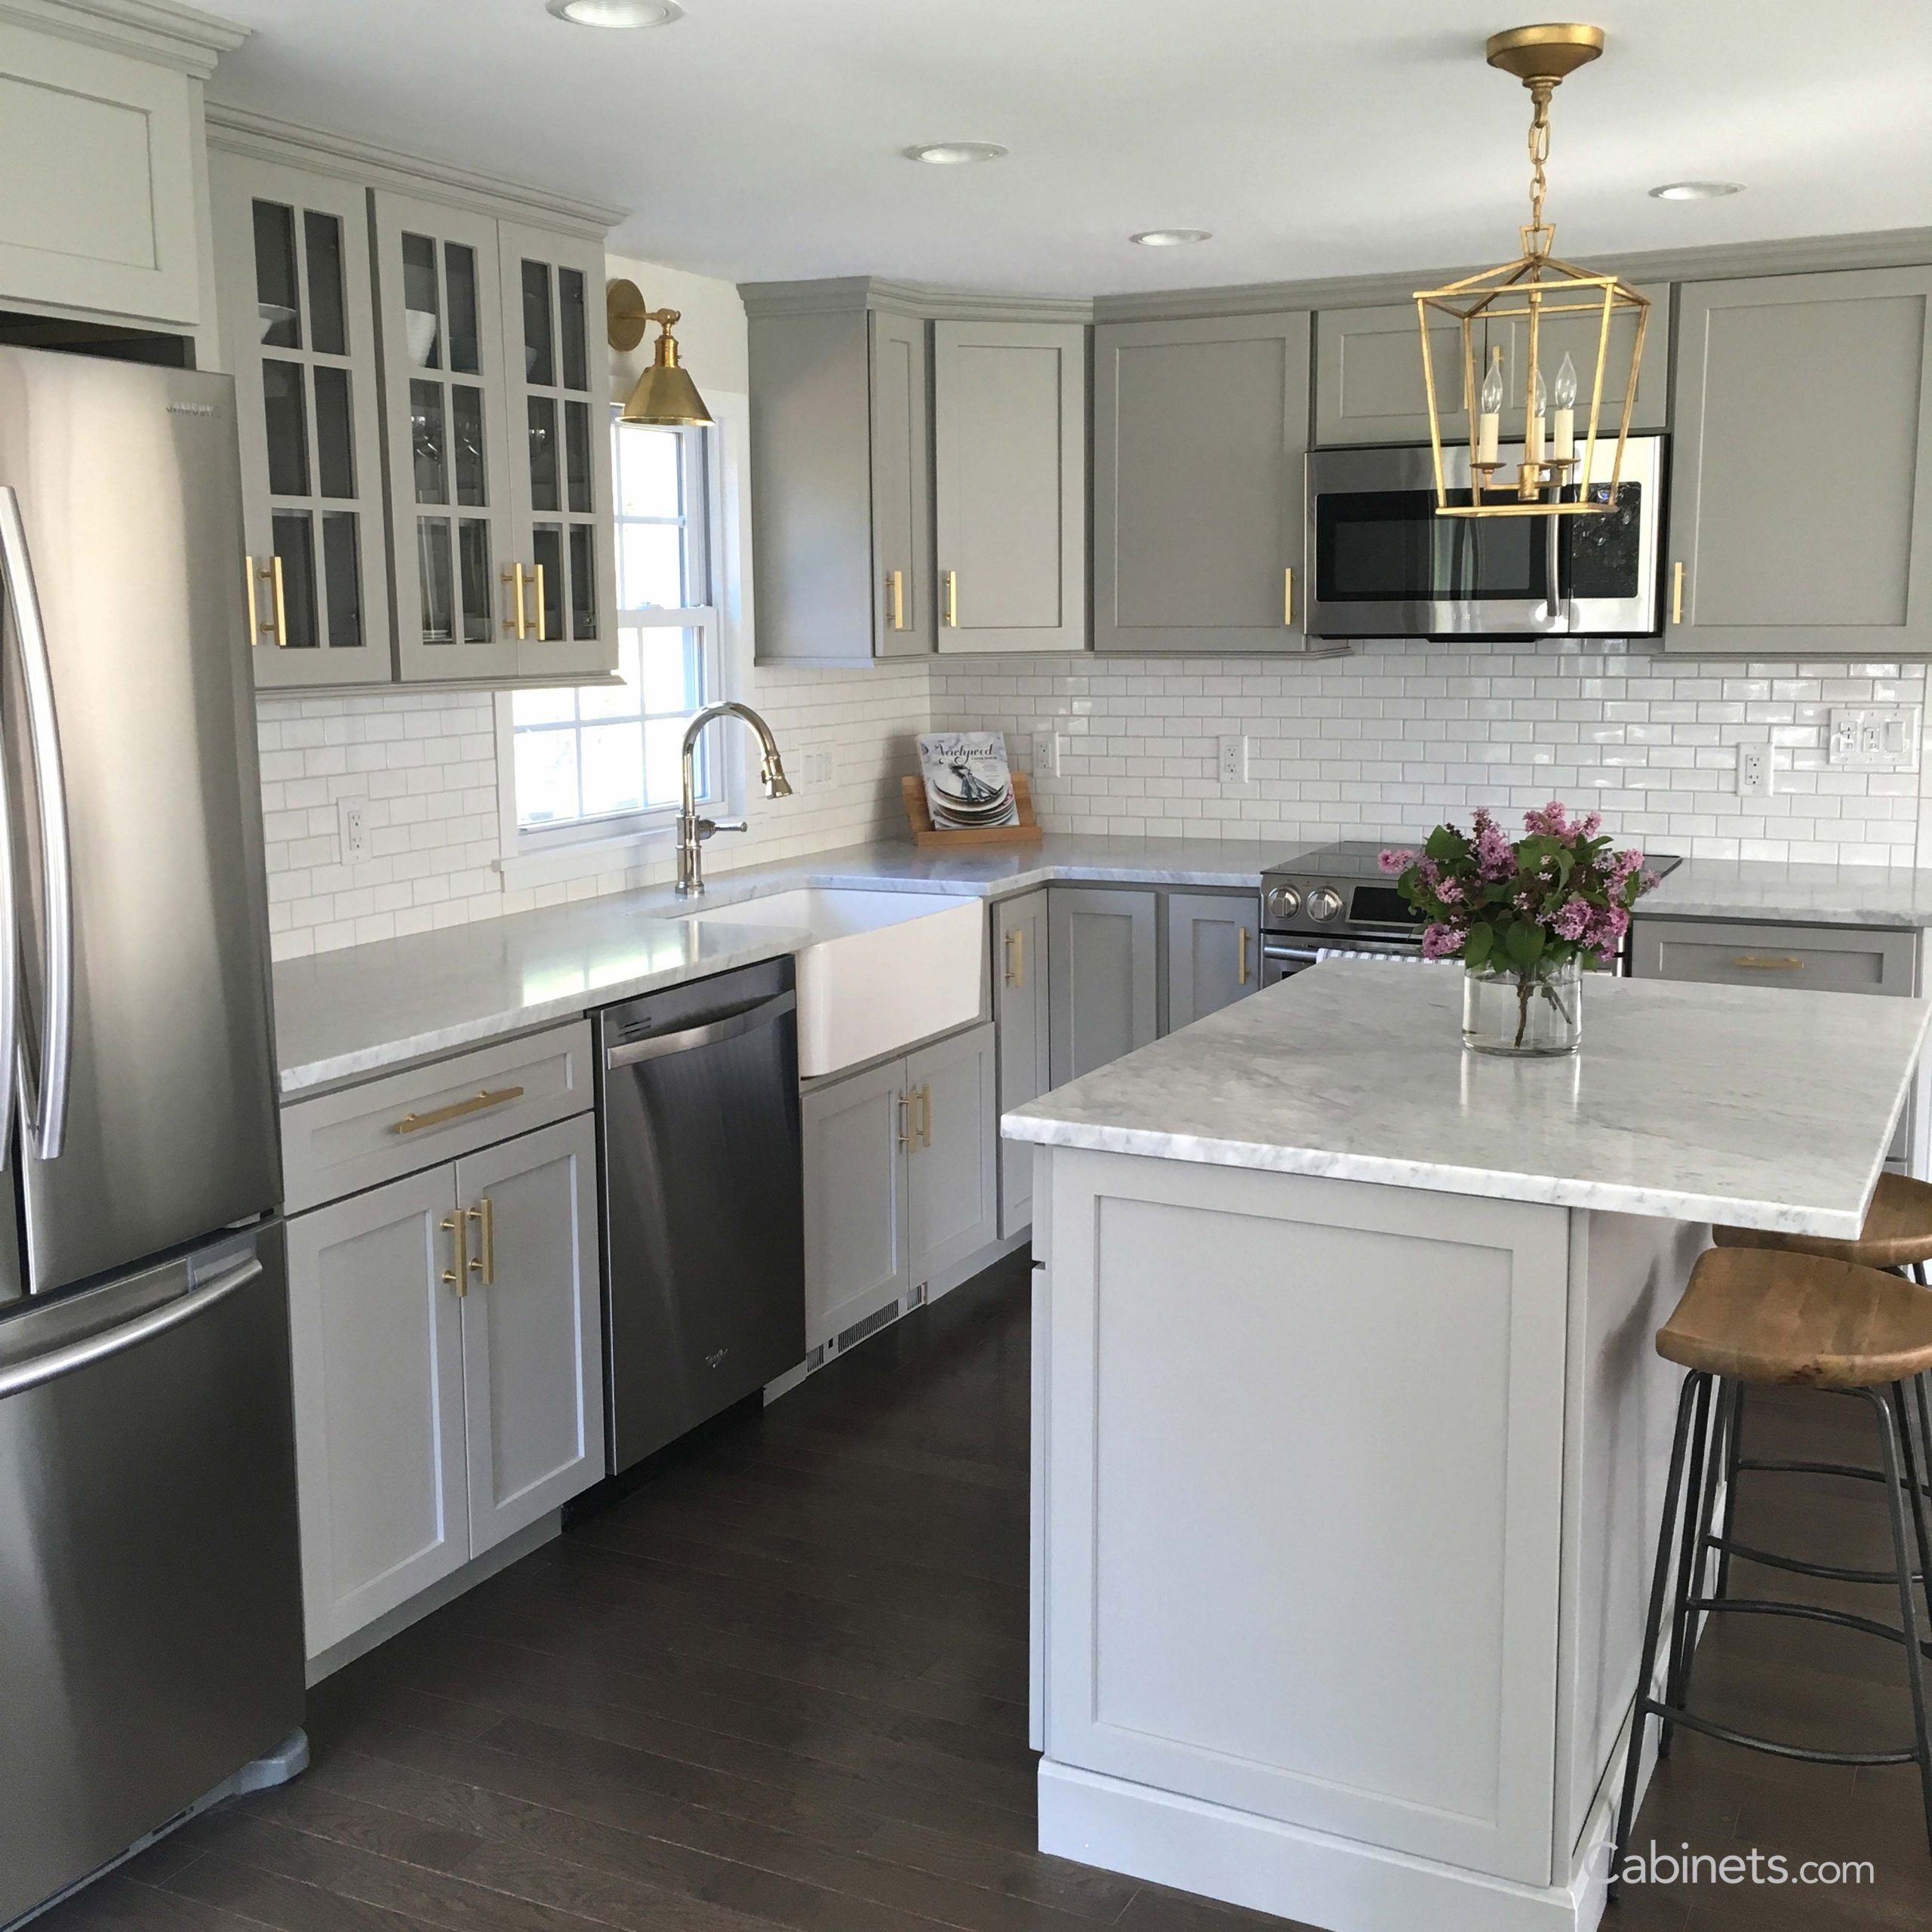 Classic Style Light Gray Kitchen With Muted Gold Hardware Cabinets Com Cabinetscom Classic Gold G In 2020 Light Grey Kitchens Kitchen Remodel Small Kitchen Design